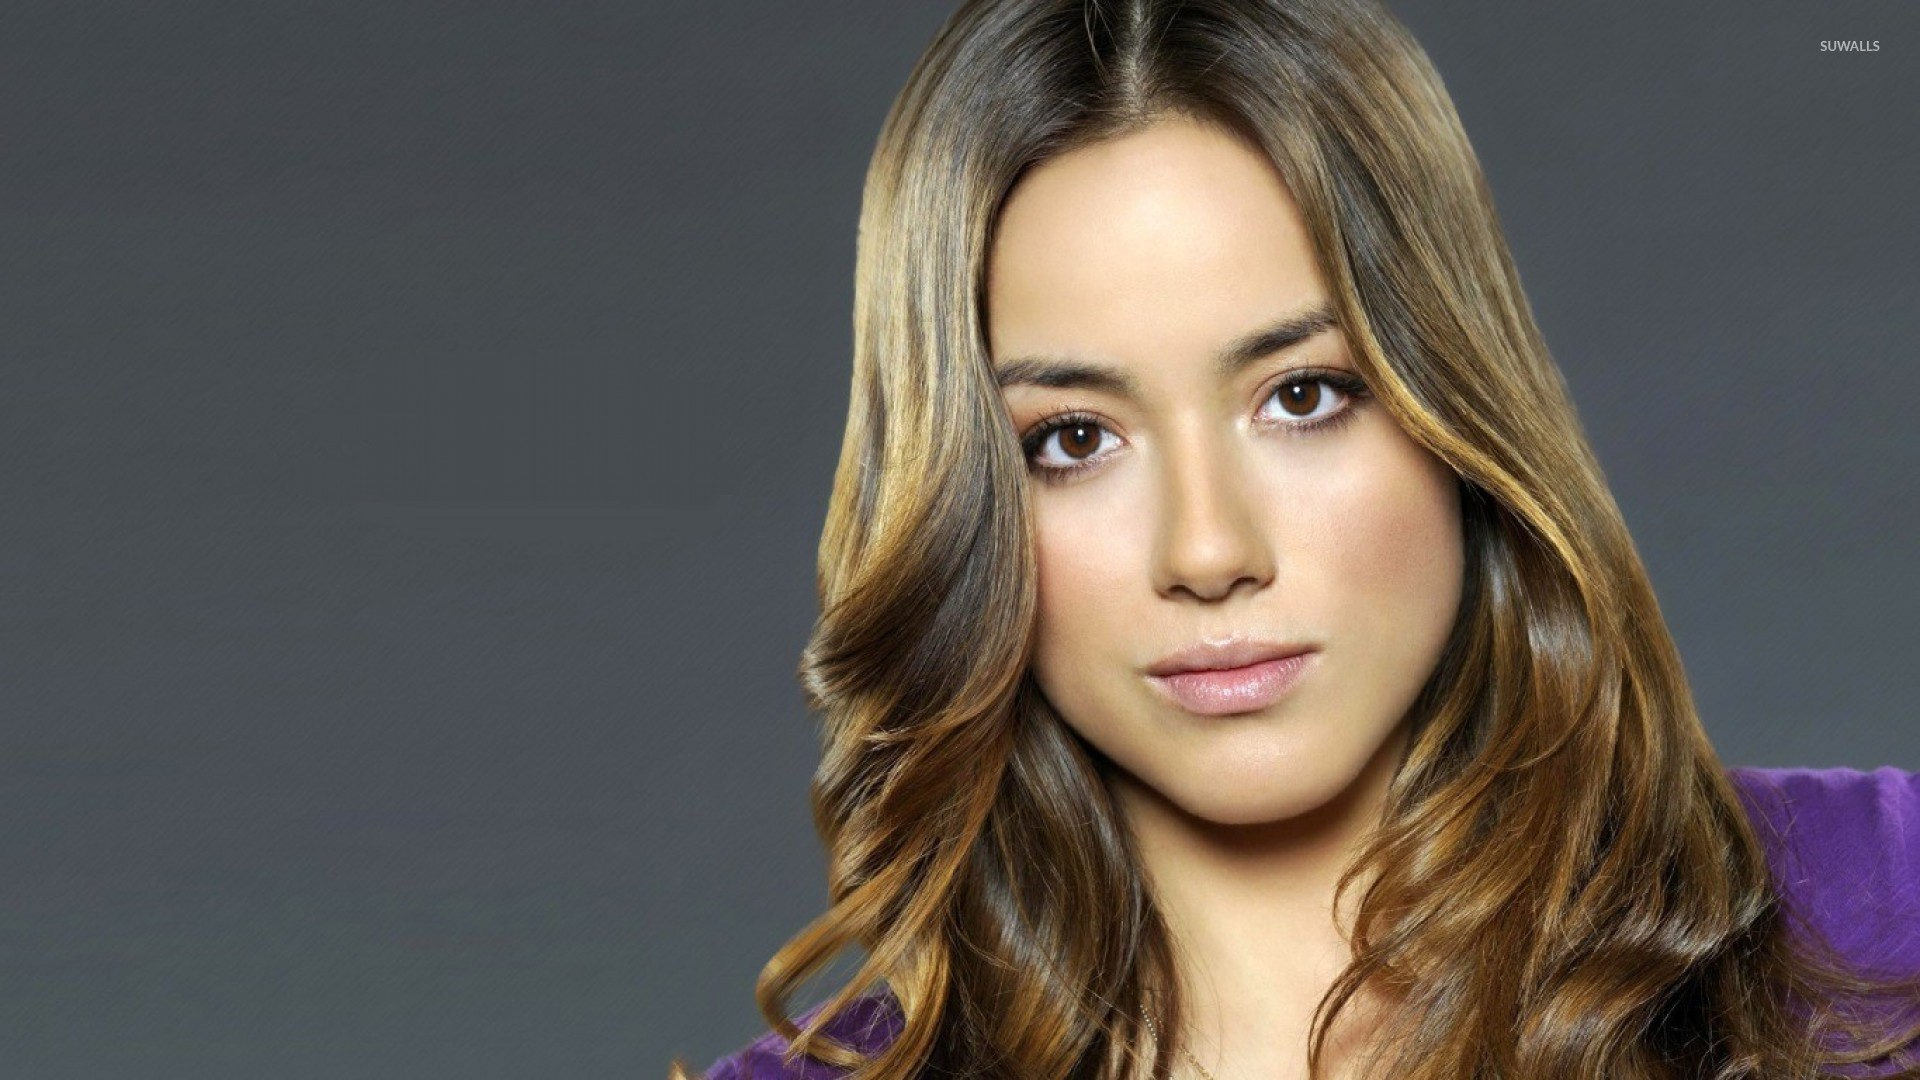 Chloe Bennet Wallpaper Celebrity Wallpapers 27298